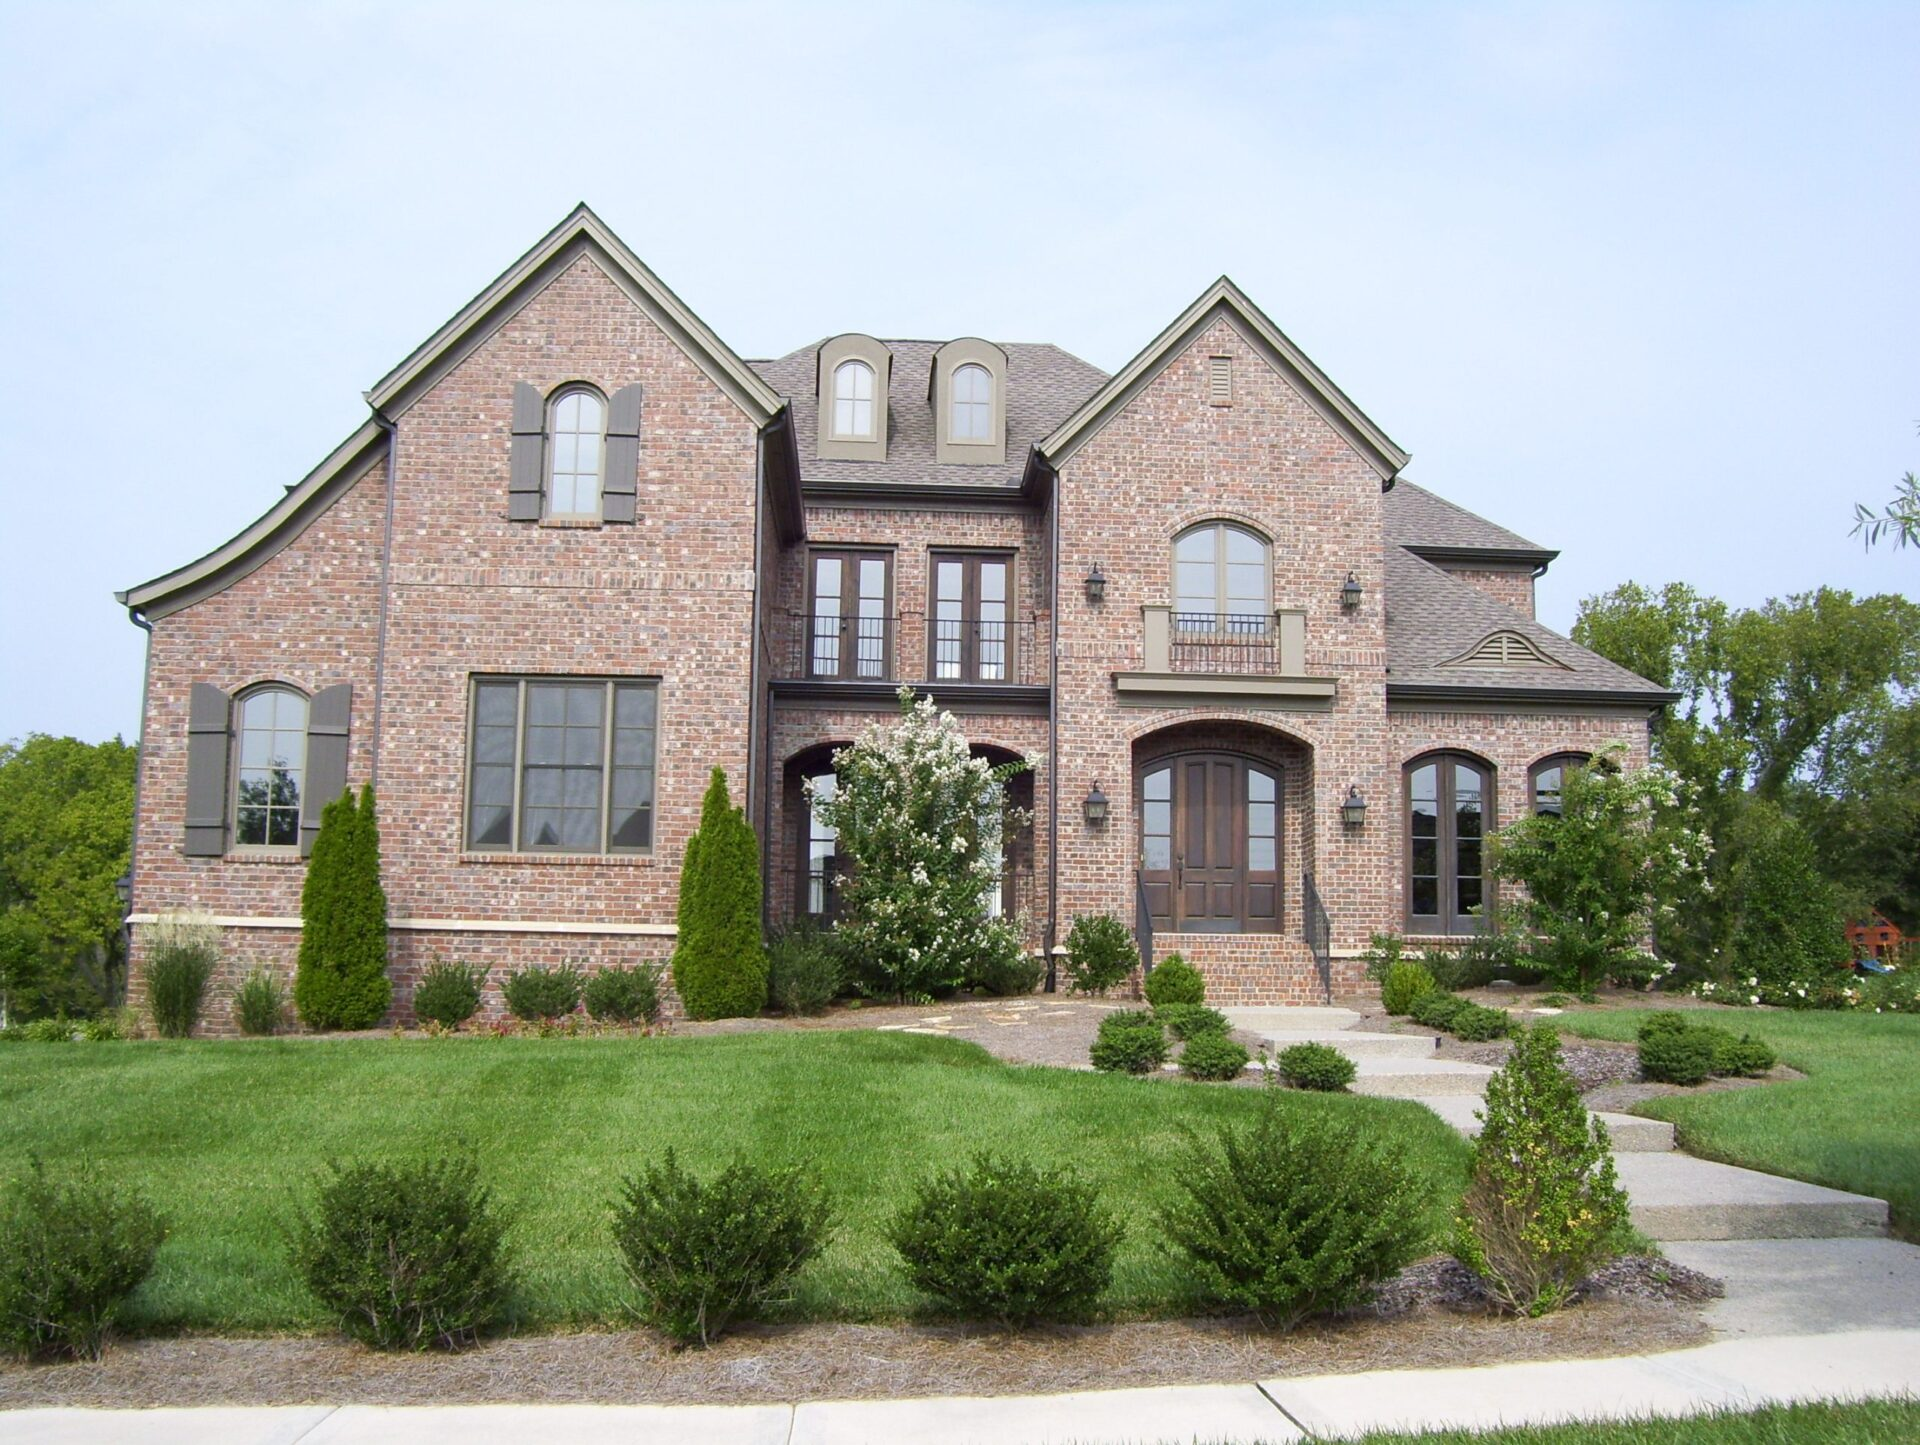 Westchester C - High-end home builders for luxury homes - luxury home builder | Nashville, TN